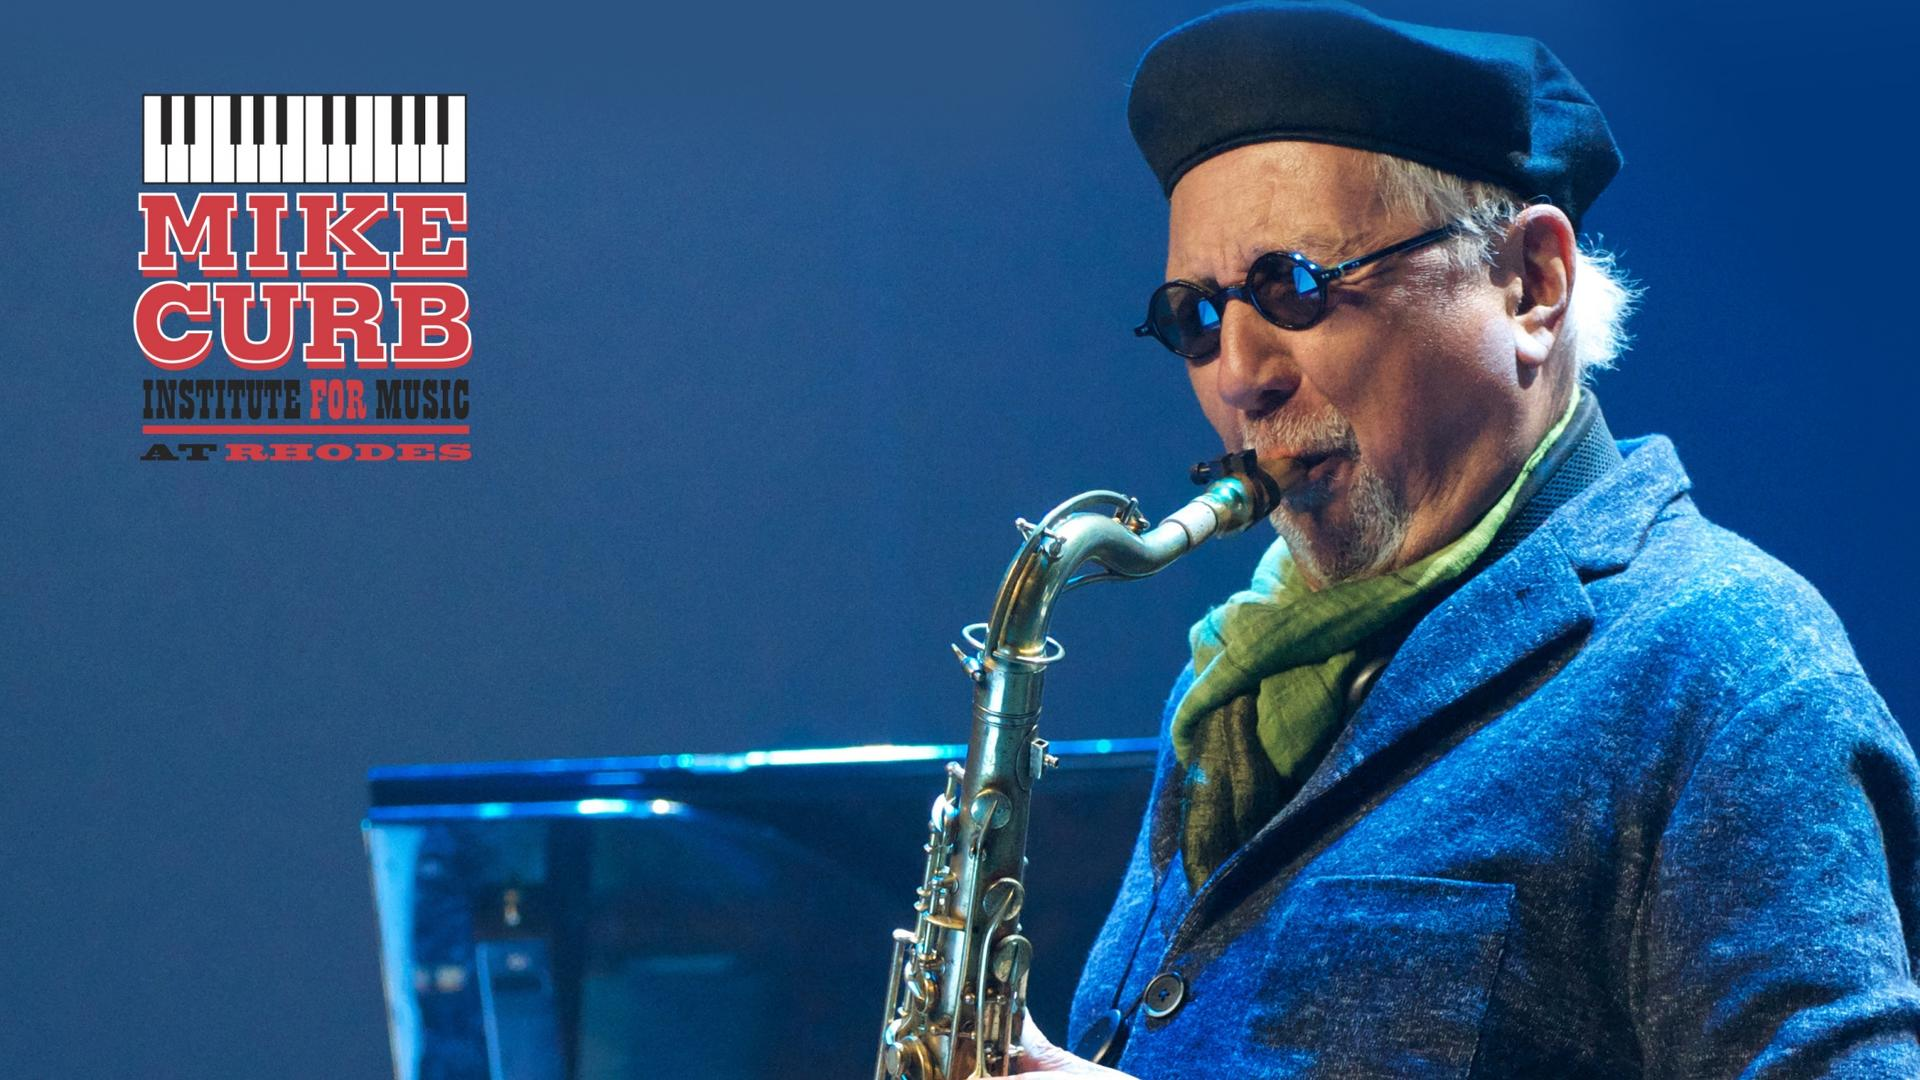 A man in sunglasses and a flatcap plays the tenor sax.